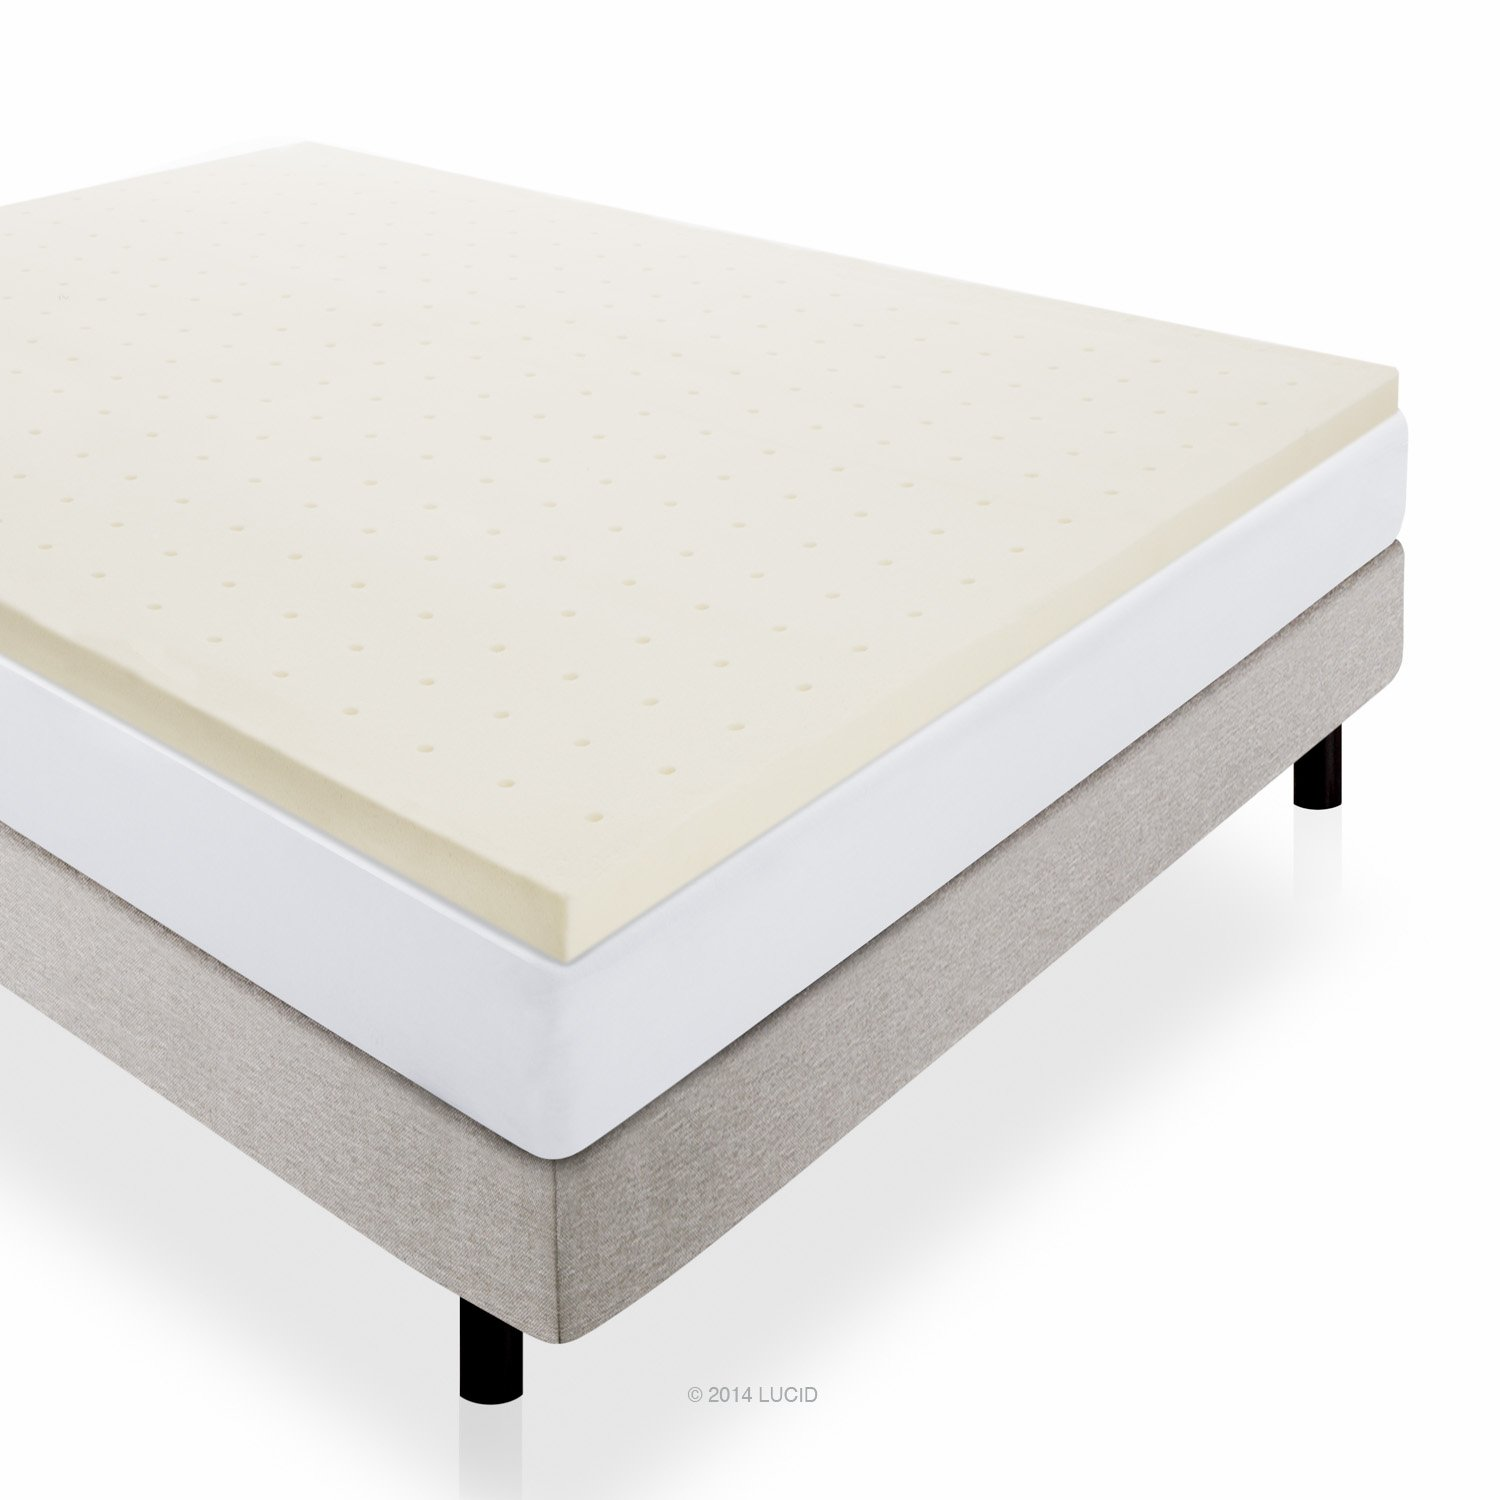 "Lucid Mattress Review 3"" Lucid by LinenSpa Memory Foam"